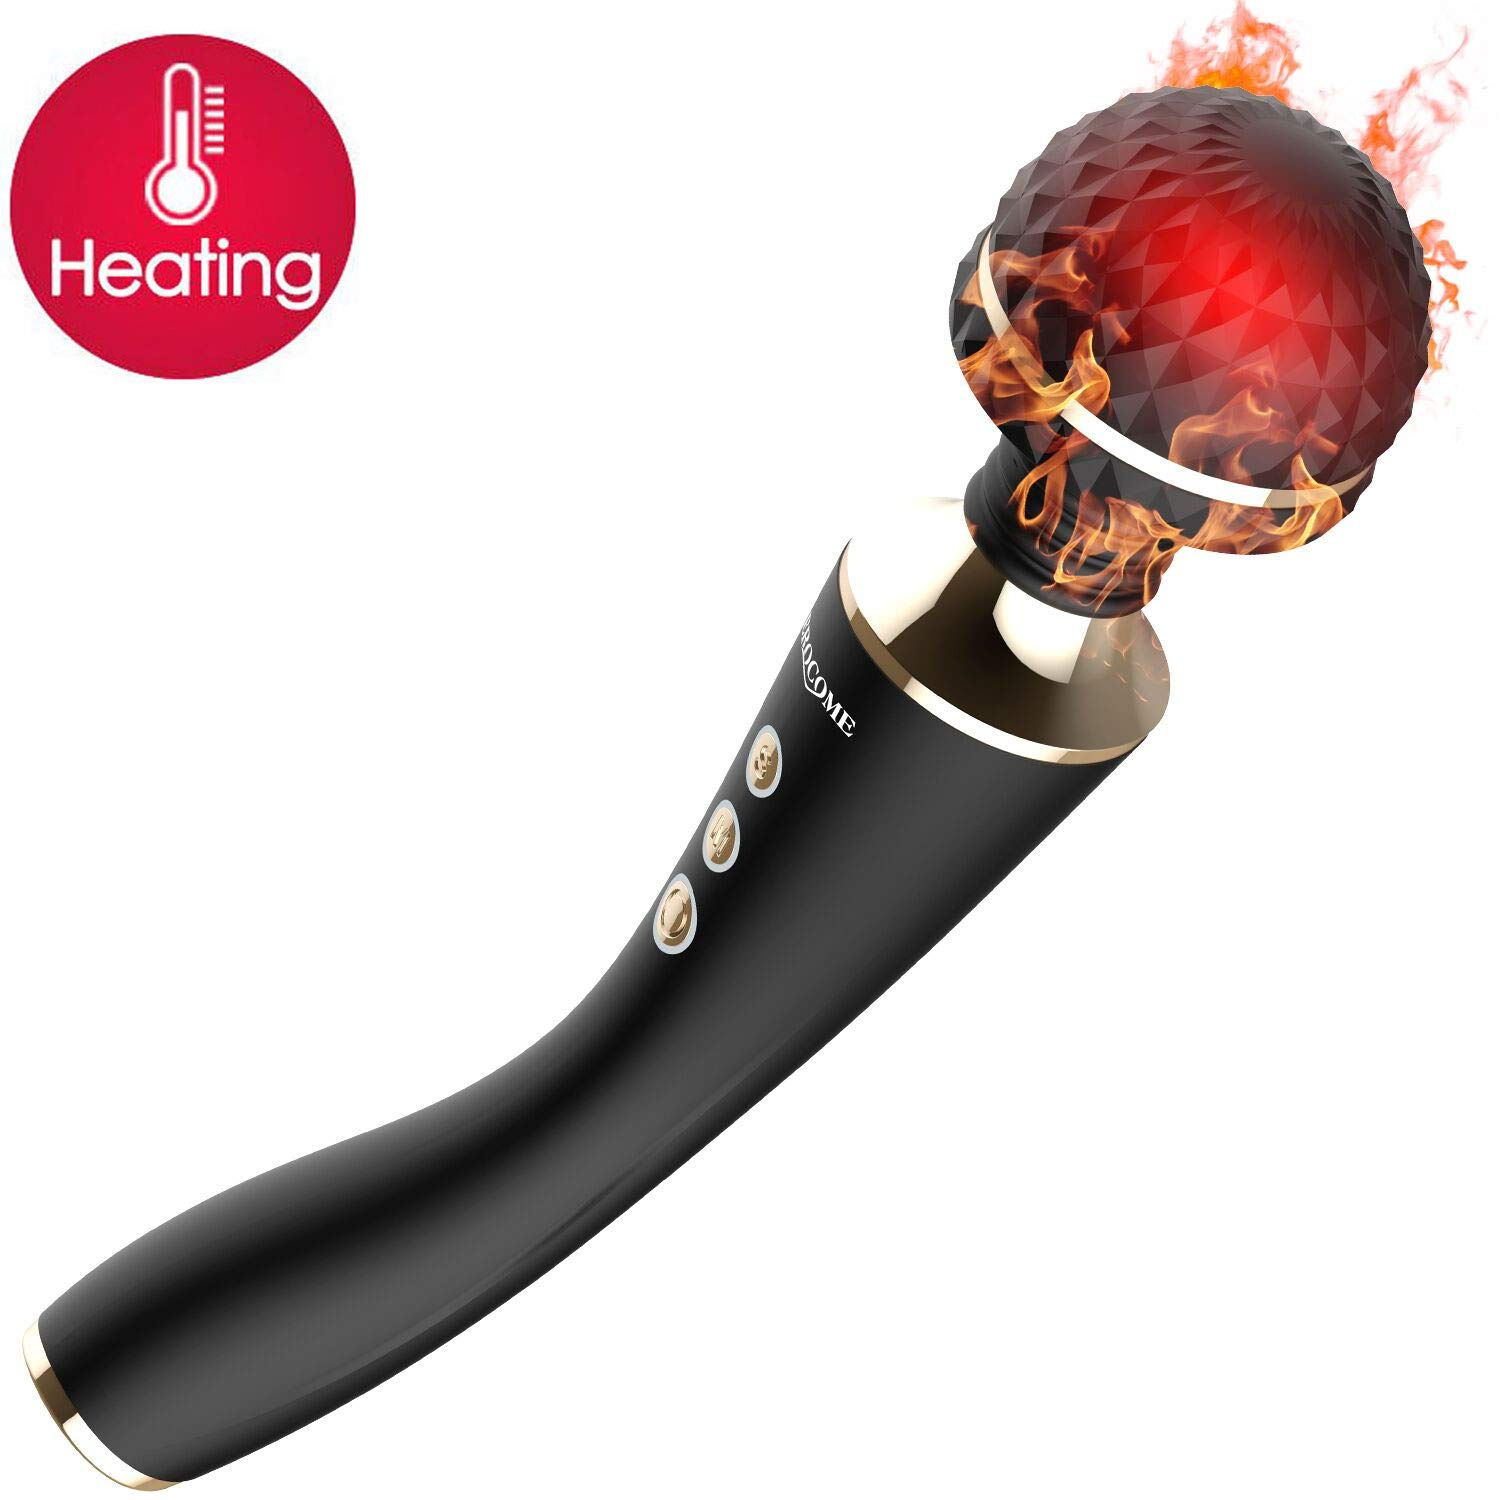 Heating Wand Massager with Flexiable Head 5 Speeds 10 Vibration Modes for Relaxing Tissue Muscles of Neck Shoulder Back, EROCOME Powerful Electric Body Handheld Massager Great Gift for Women/Men